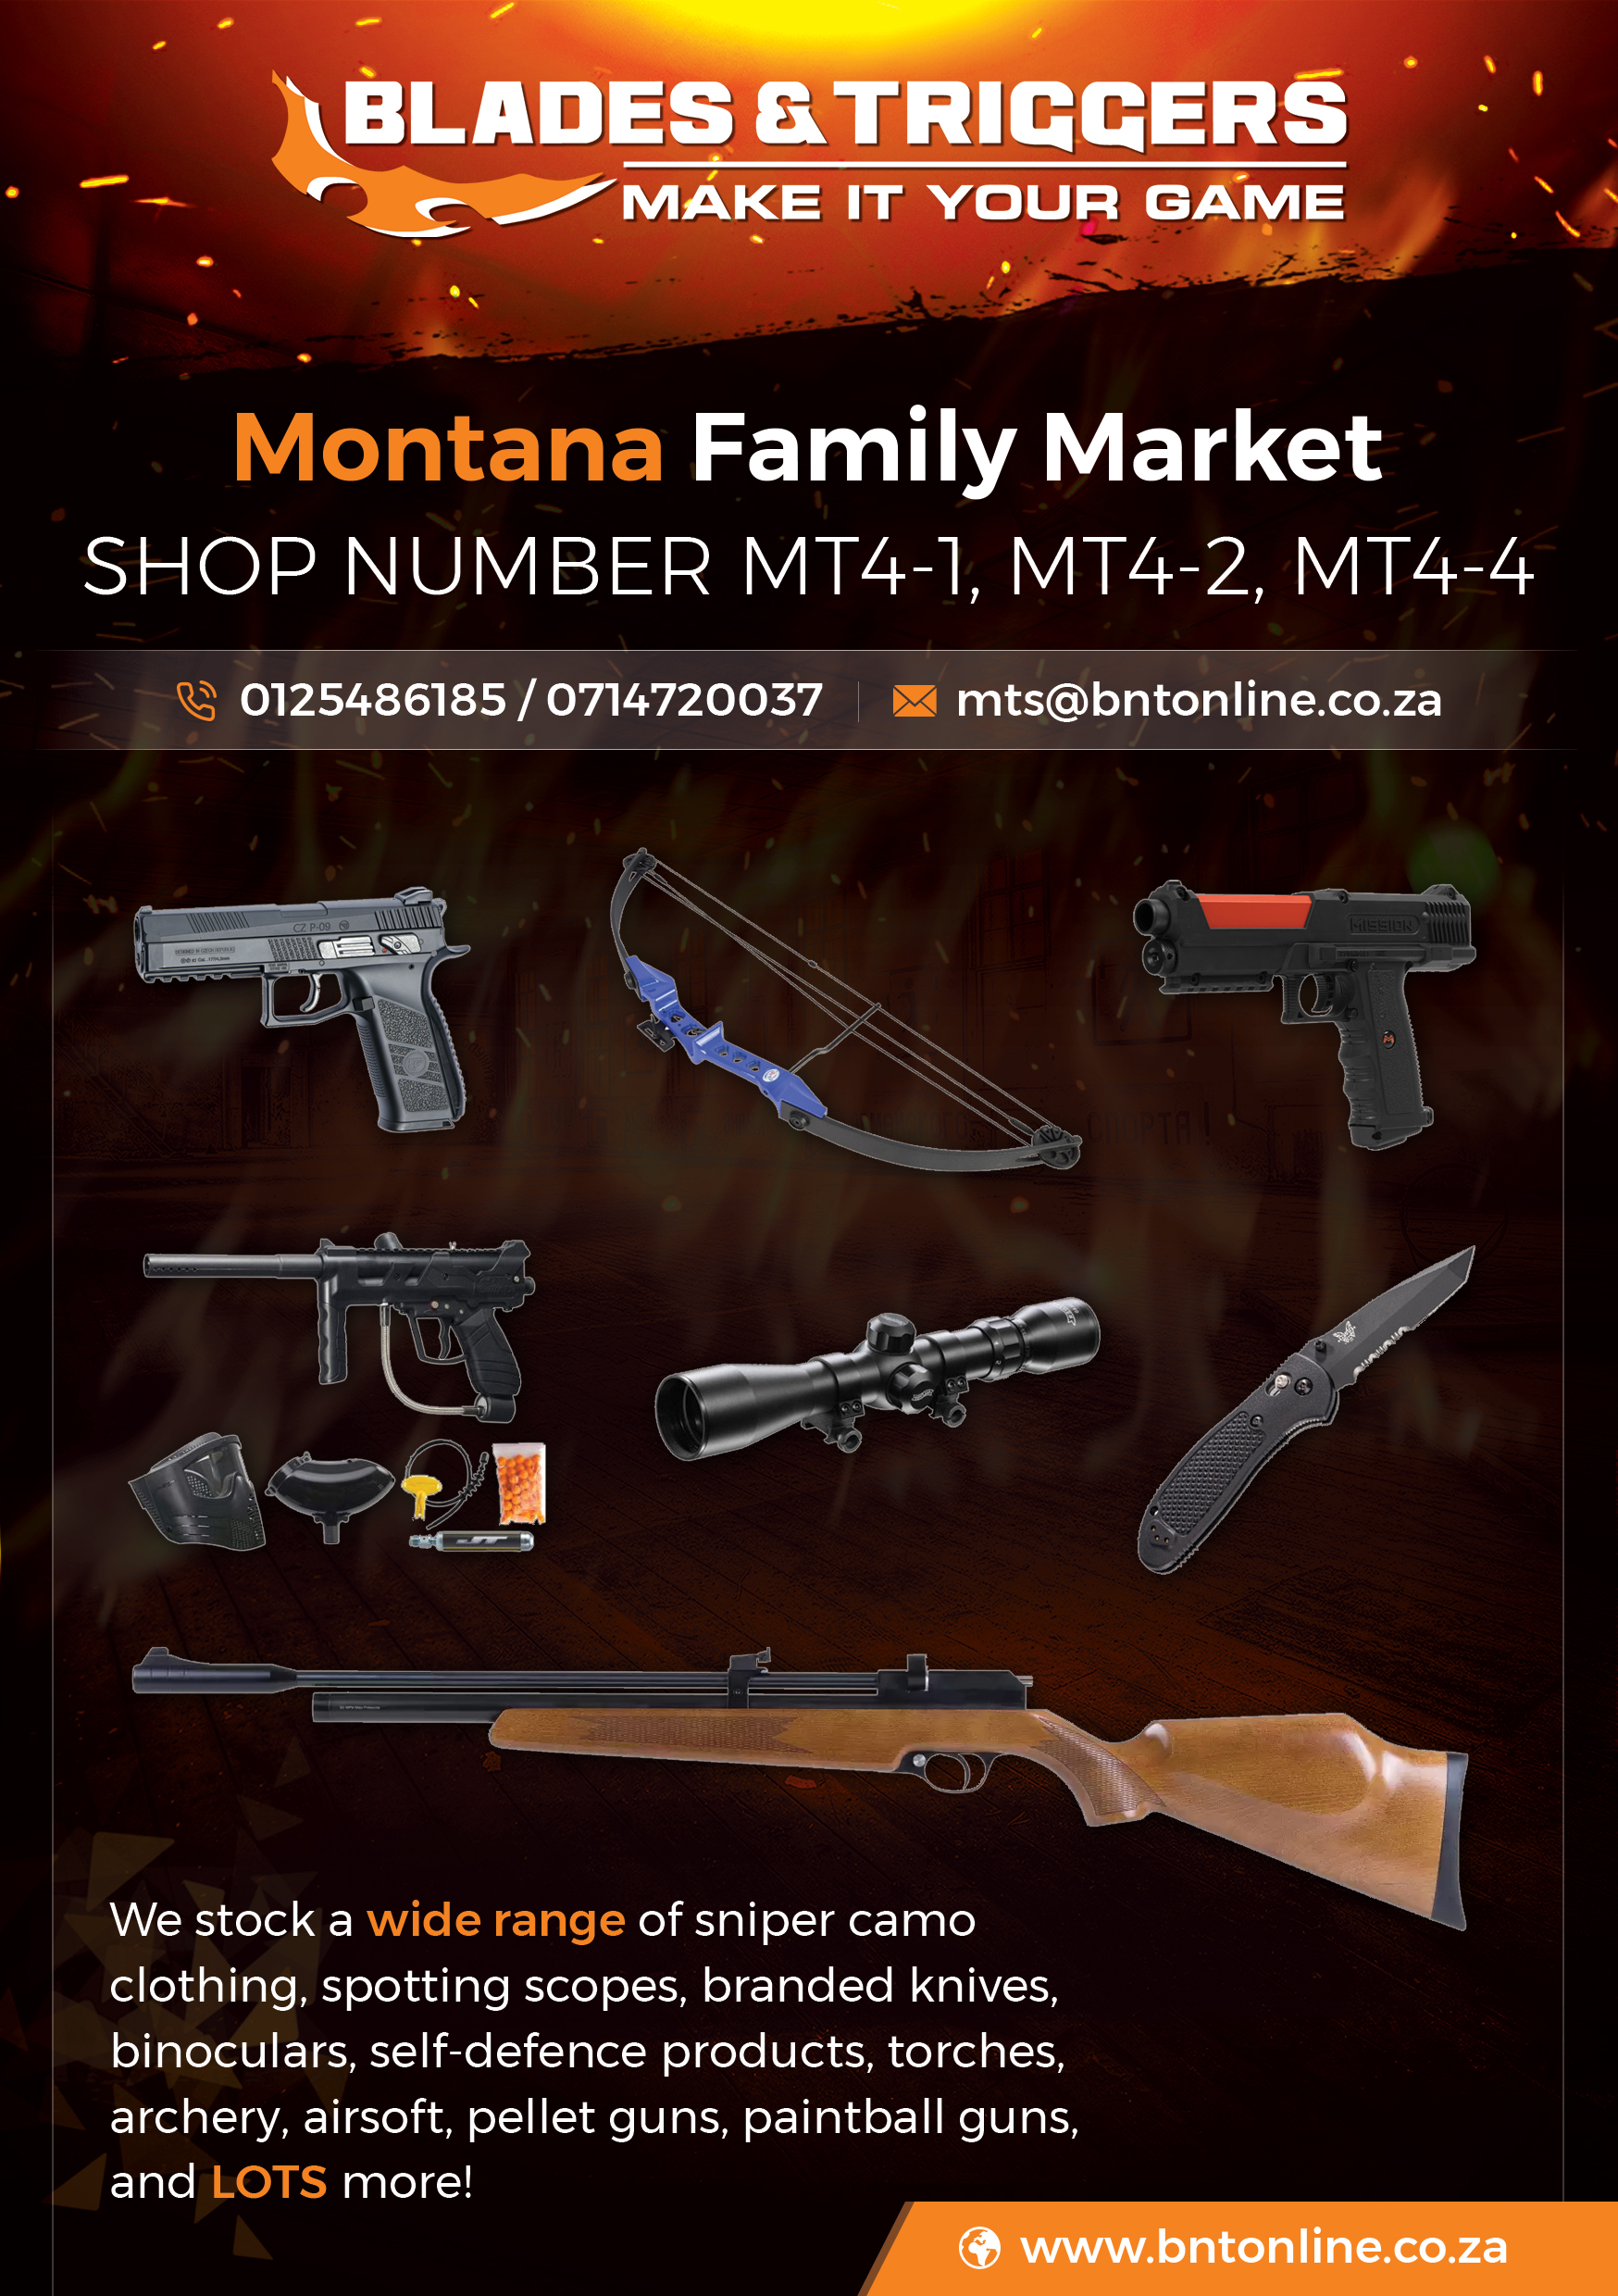 Blades and Triggers | Montana Family Market